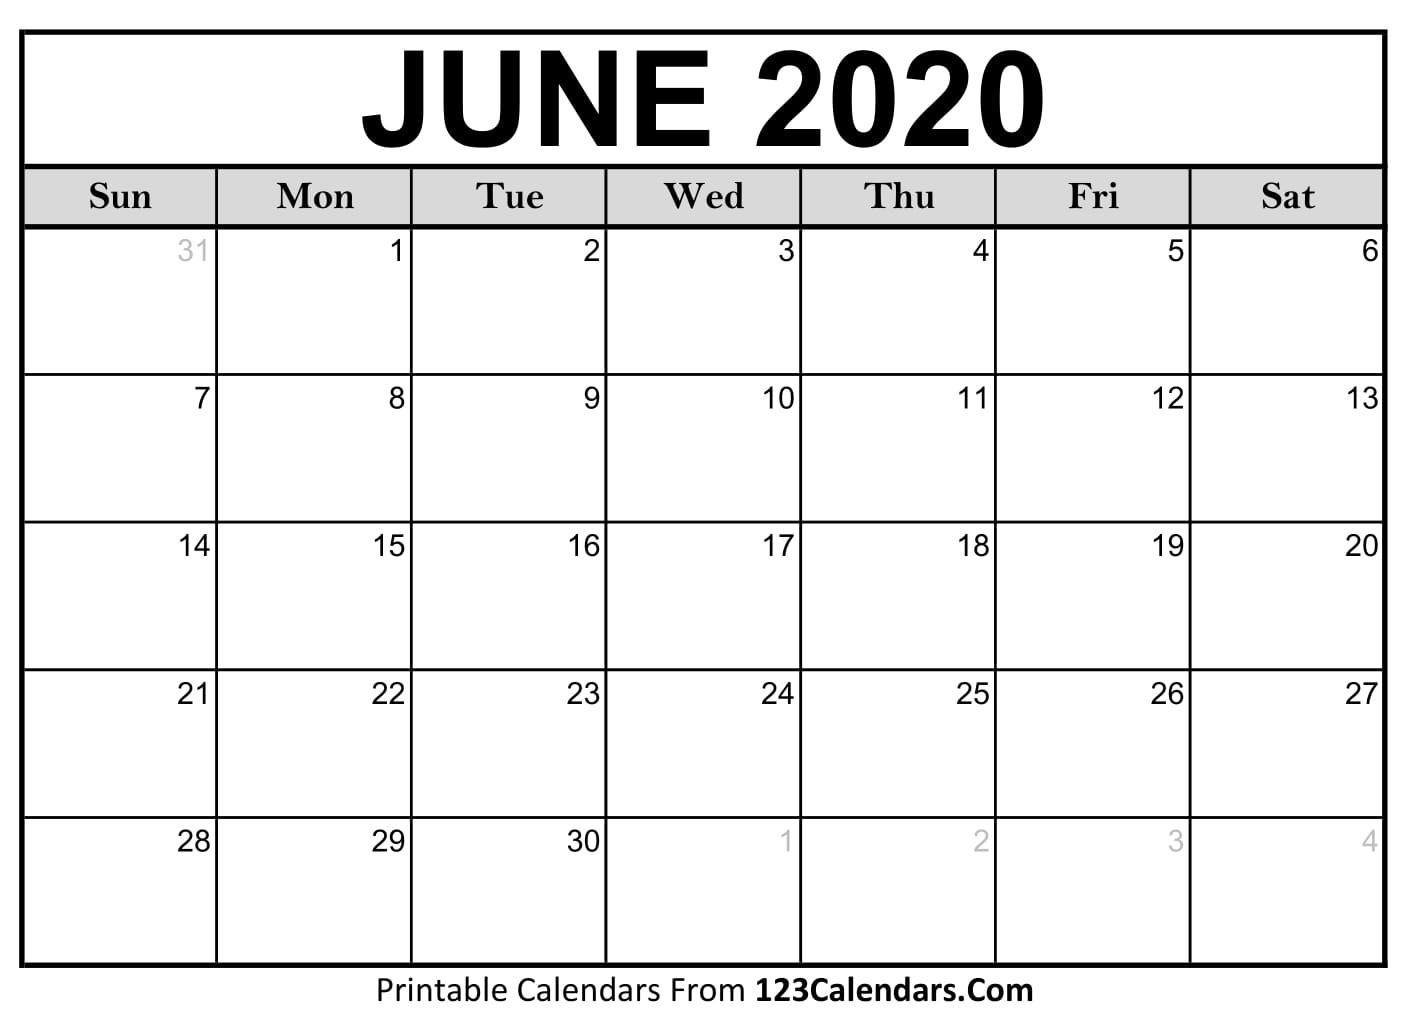 photo about Printable Calendar 2020 referred to as June 2020 Printable Calendar